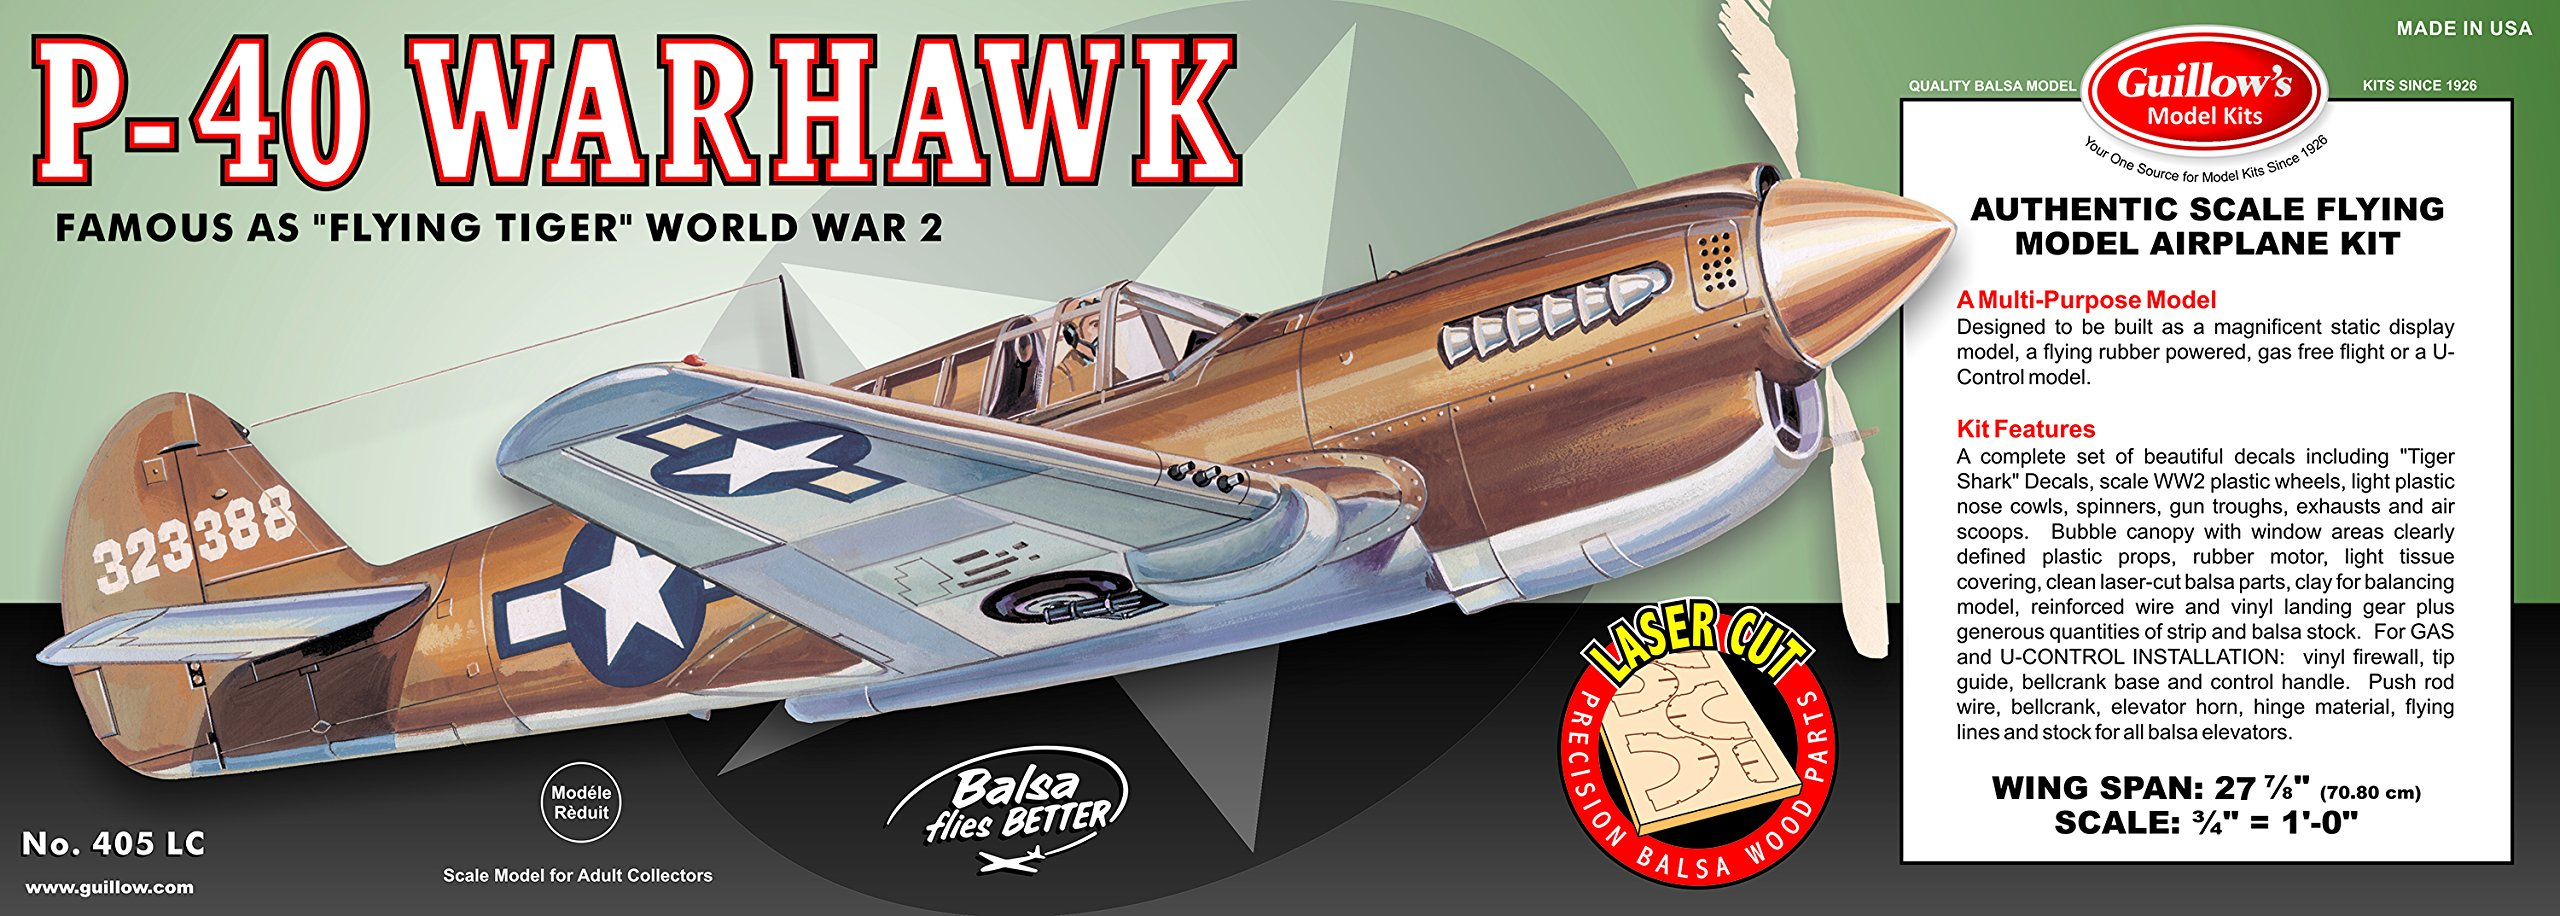 Guillow's P-40 Warhawk Laser Cut Model Kit by Guillow (Image #1)